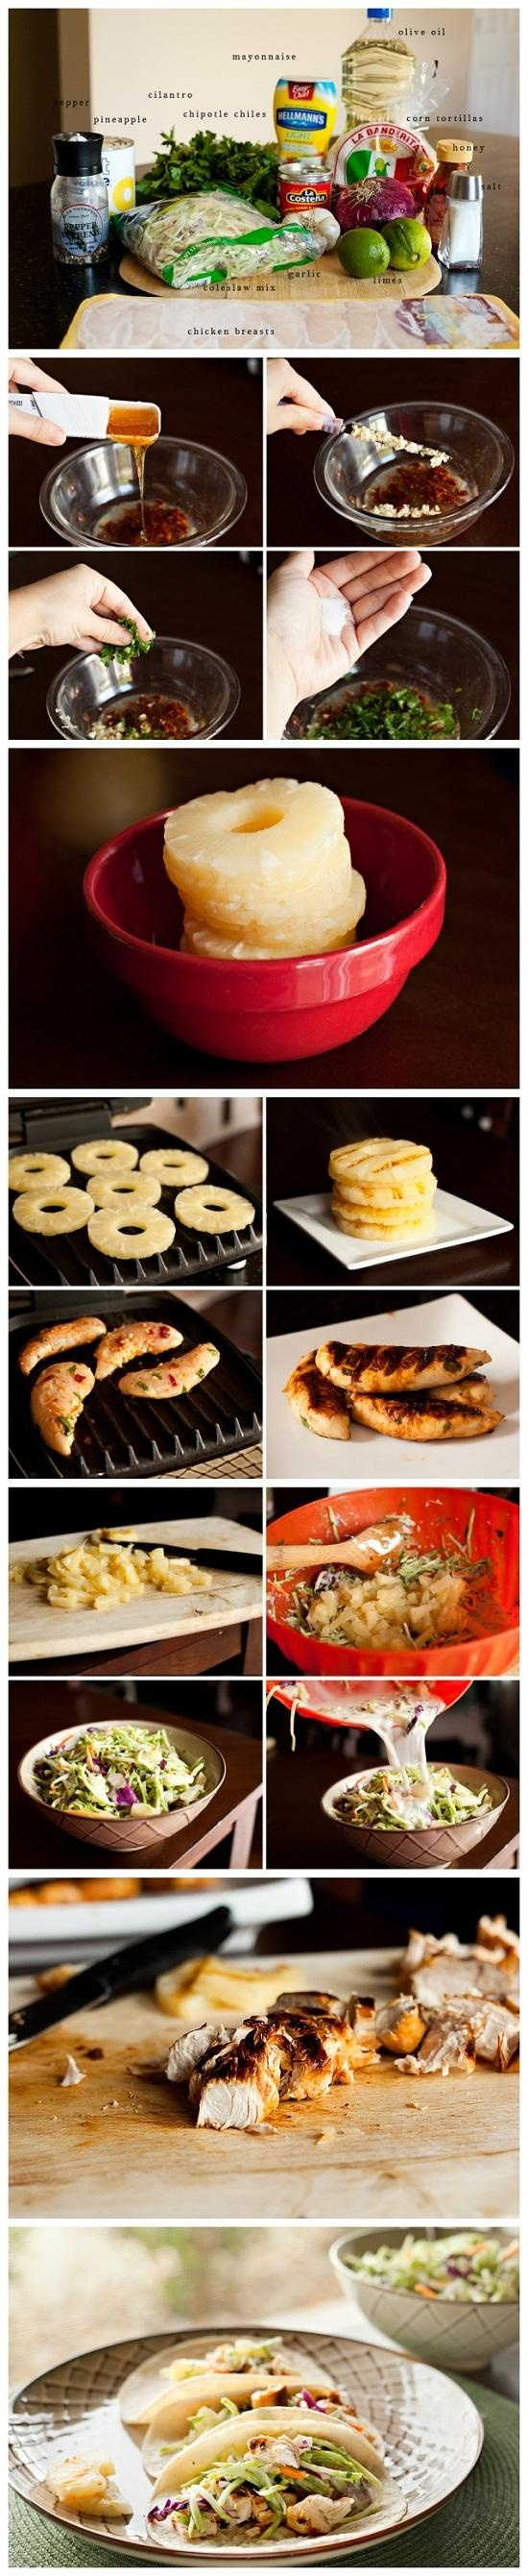 1000+ images about Lunch Time! on Pinterest | Salts ...